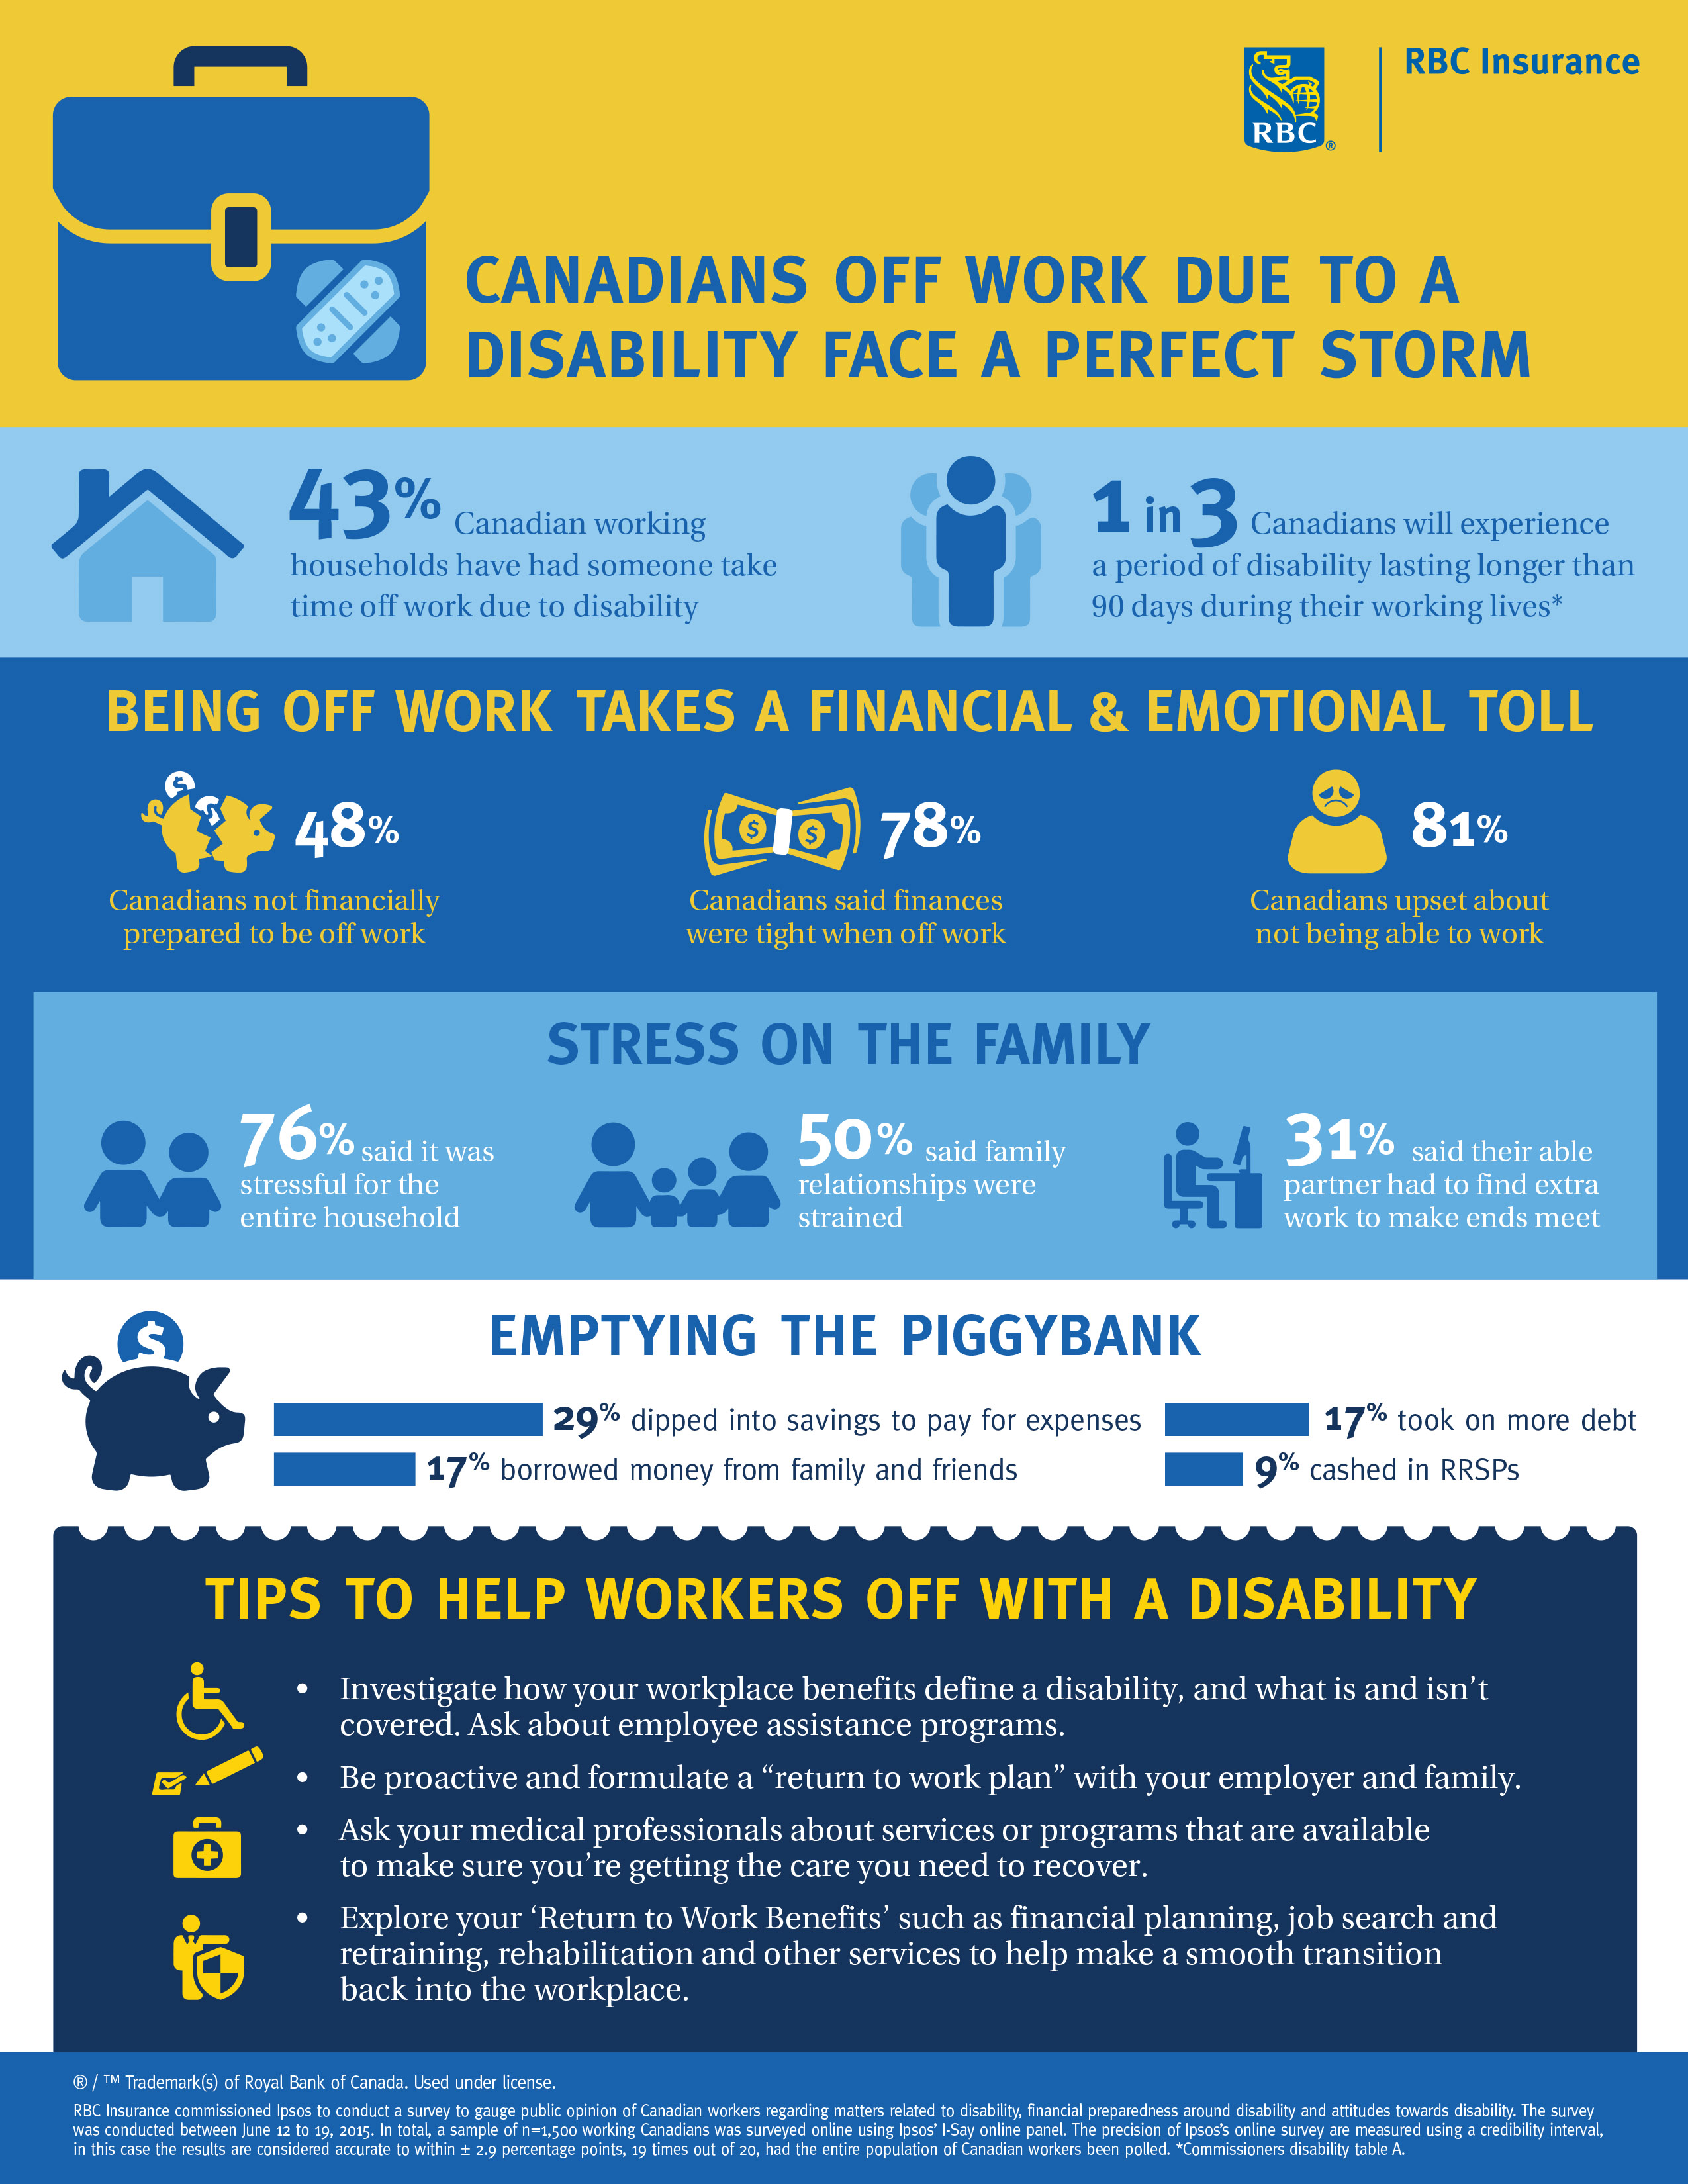 http://www.rbc.com/newsroom/_assets-custom/images/0216-ins-disability-infographic.jpg